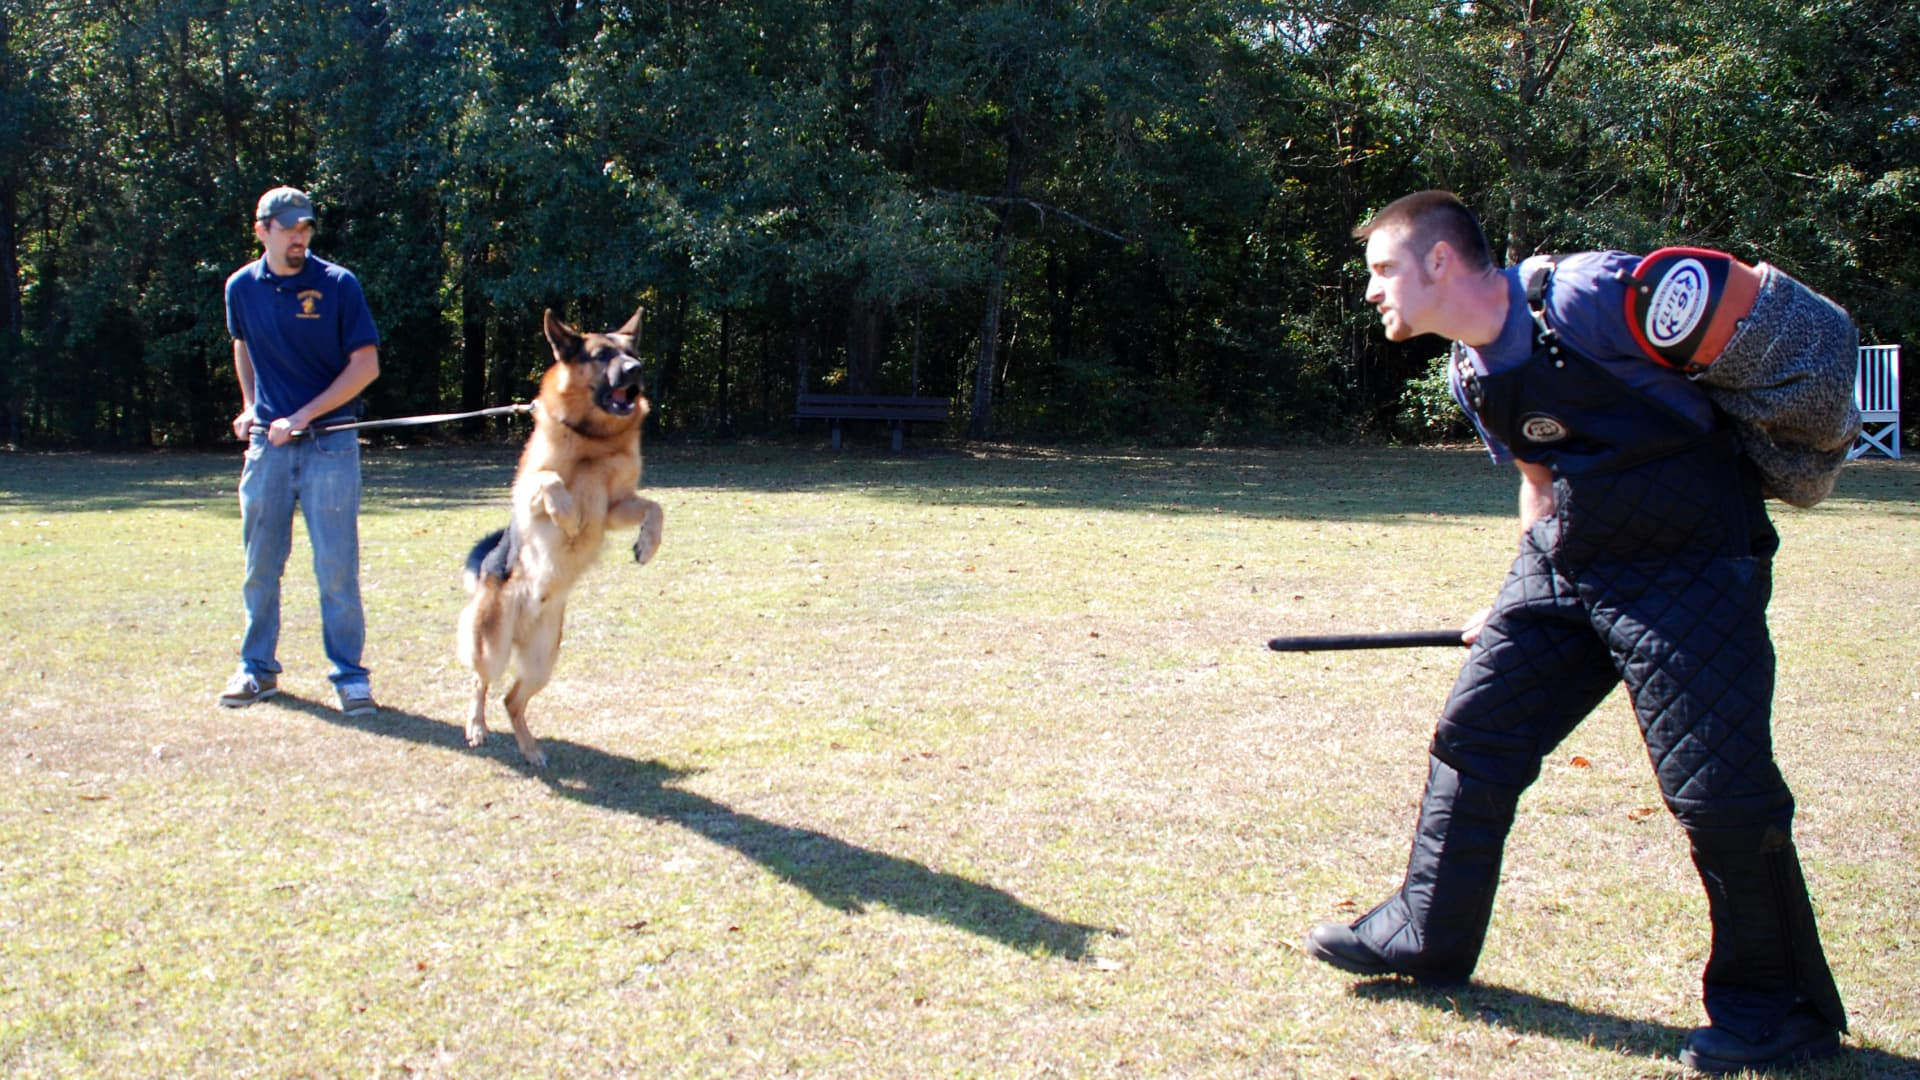 A Harrison K-9 trainer works with an executive protection dog.